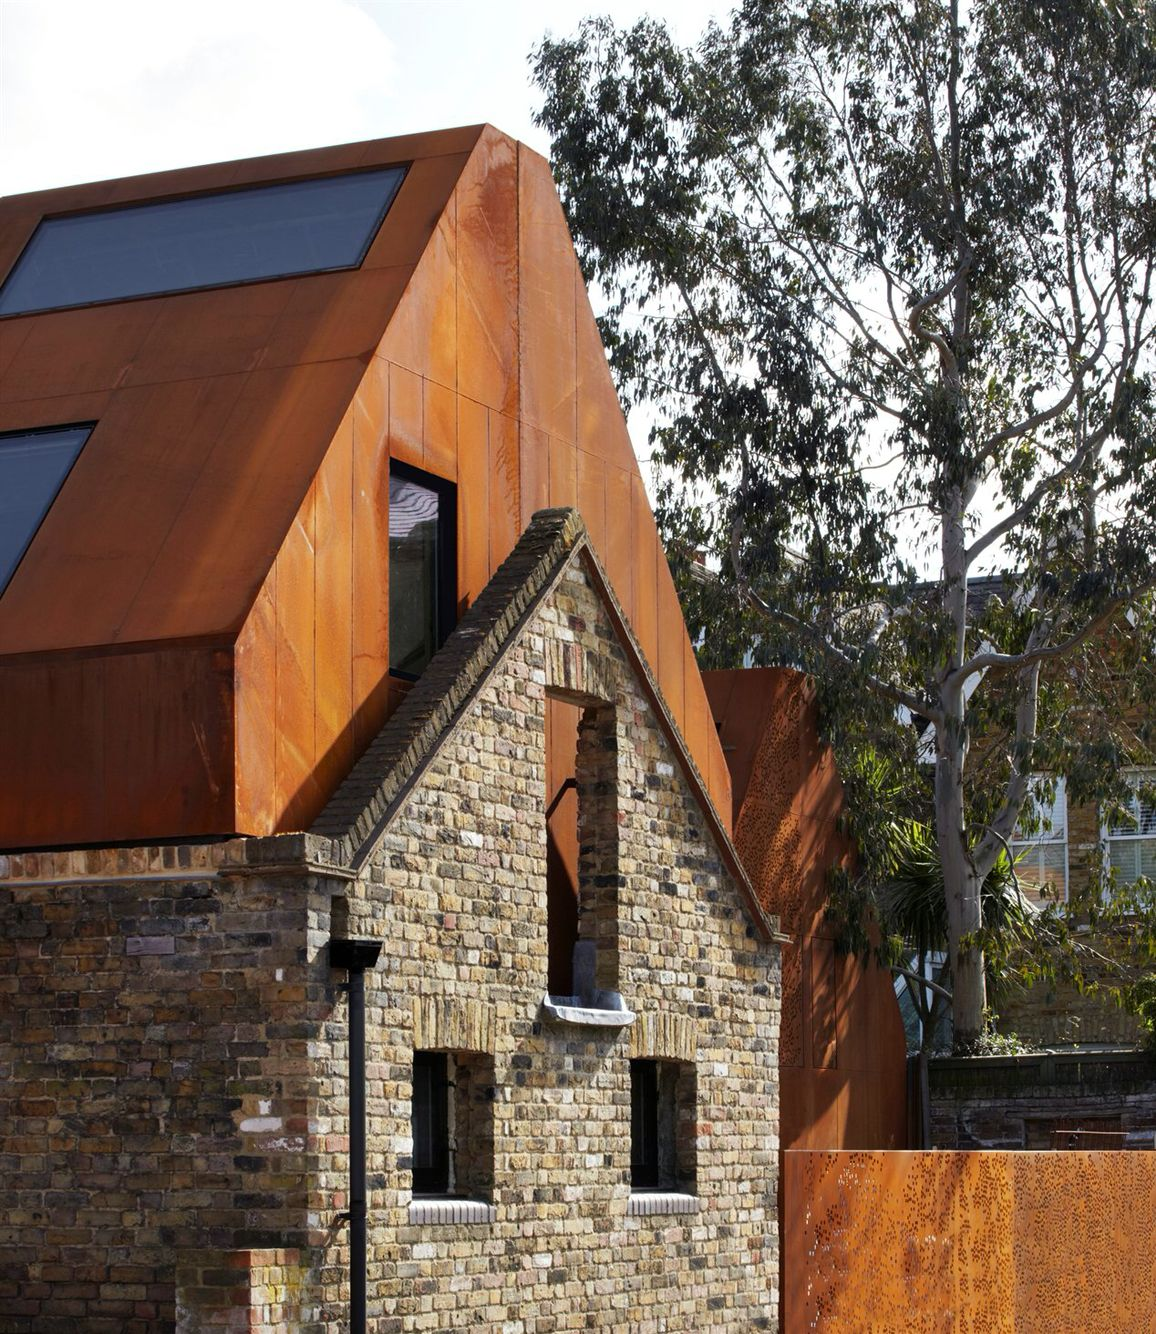 Weathering Steel Architecture